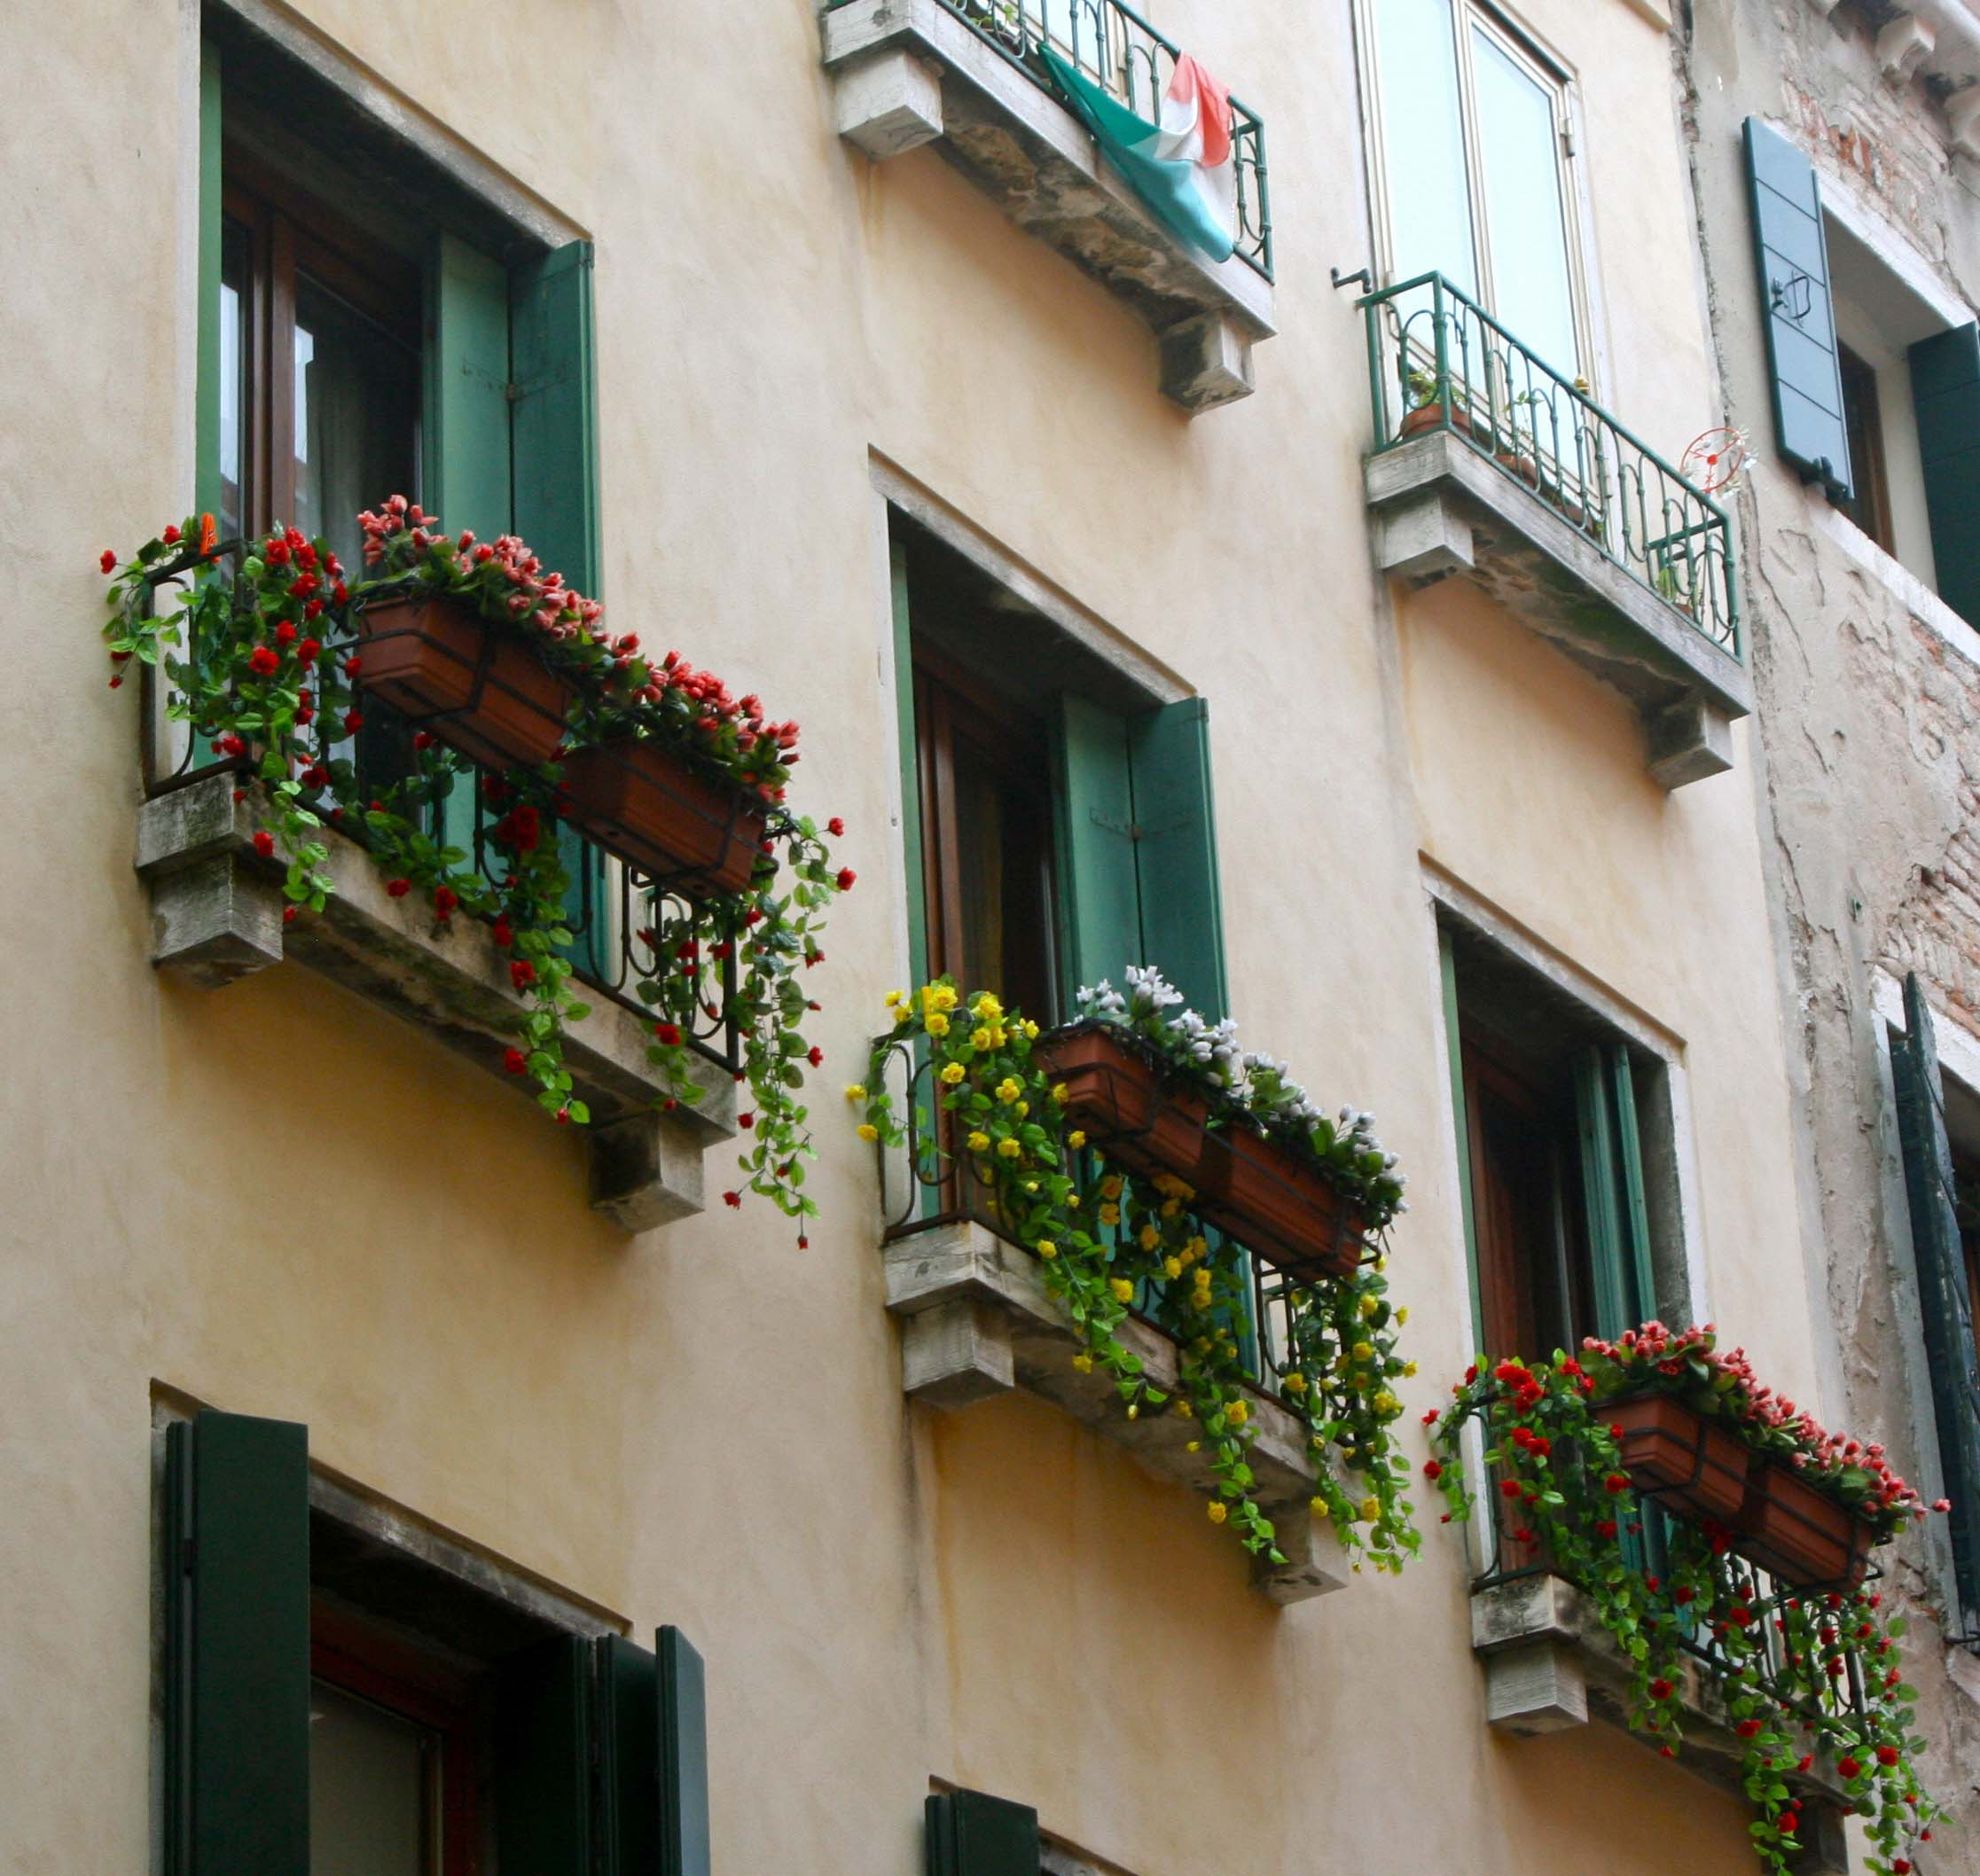 Window flower boxes are common in Venice, Italy.